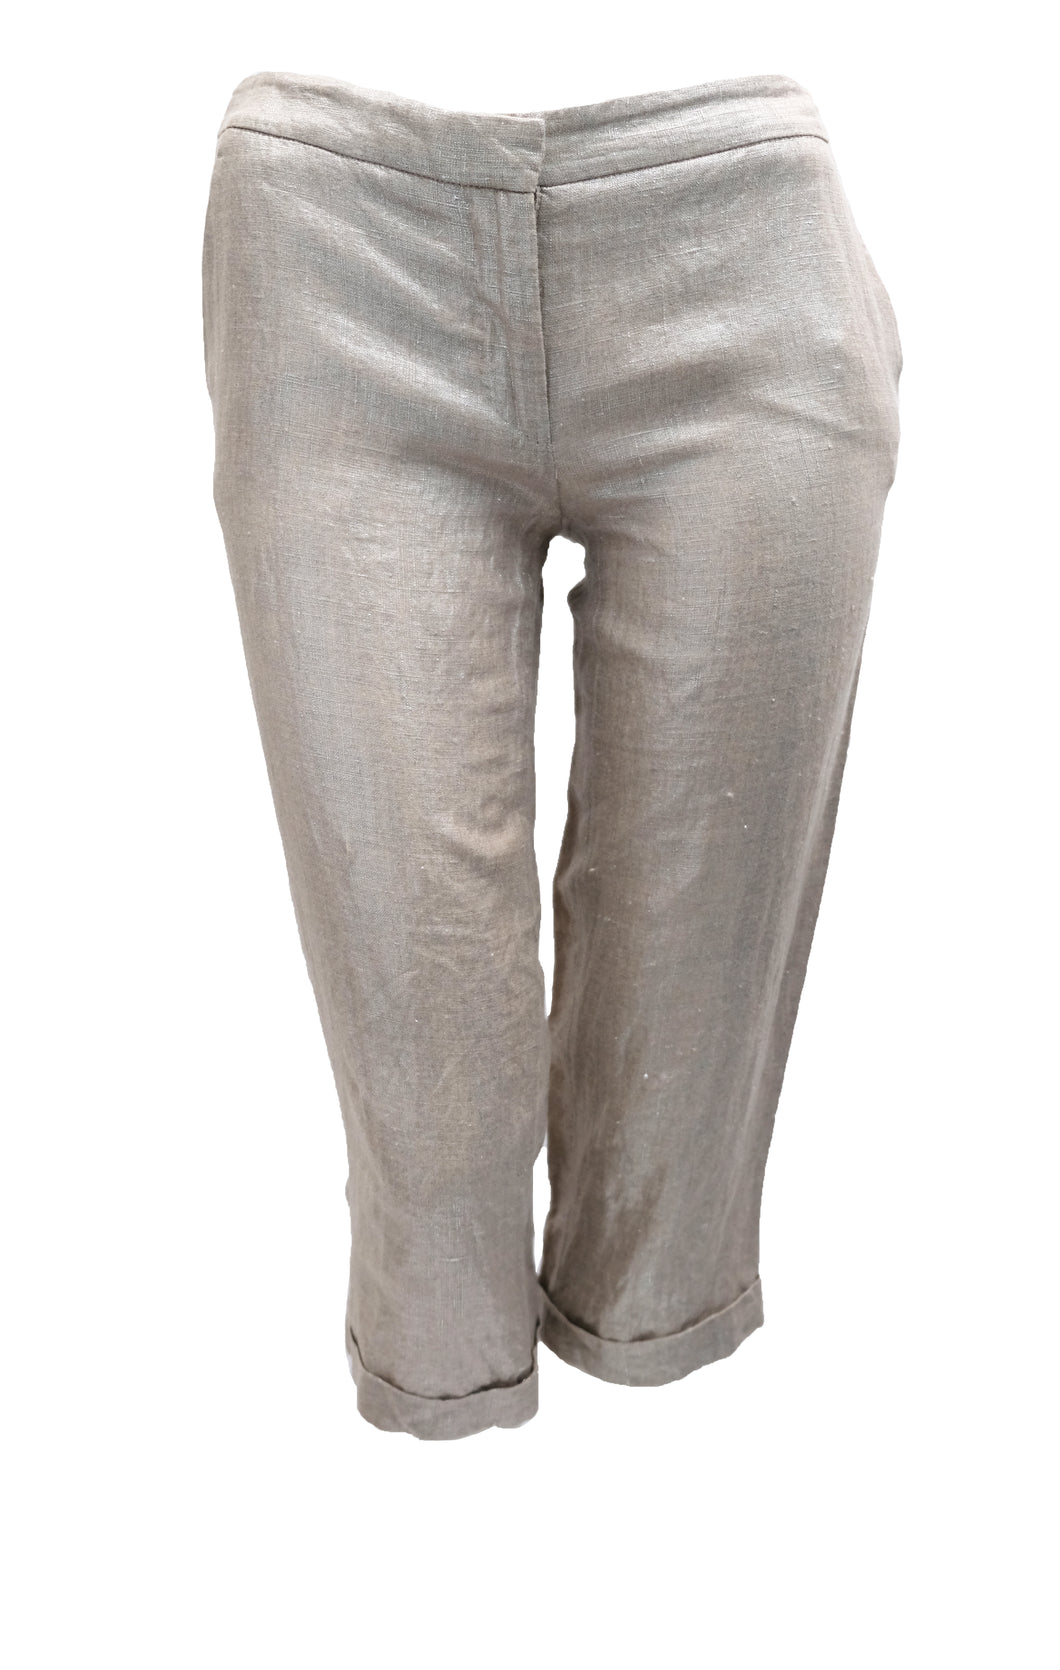 Alexander McQueen Capri Pants in Silver Linen, UK8